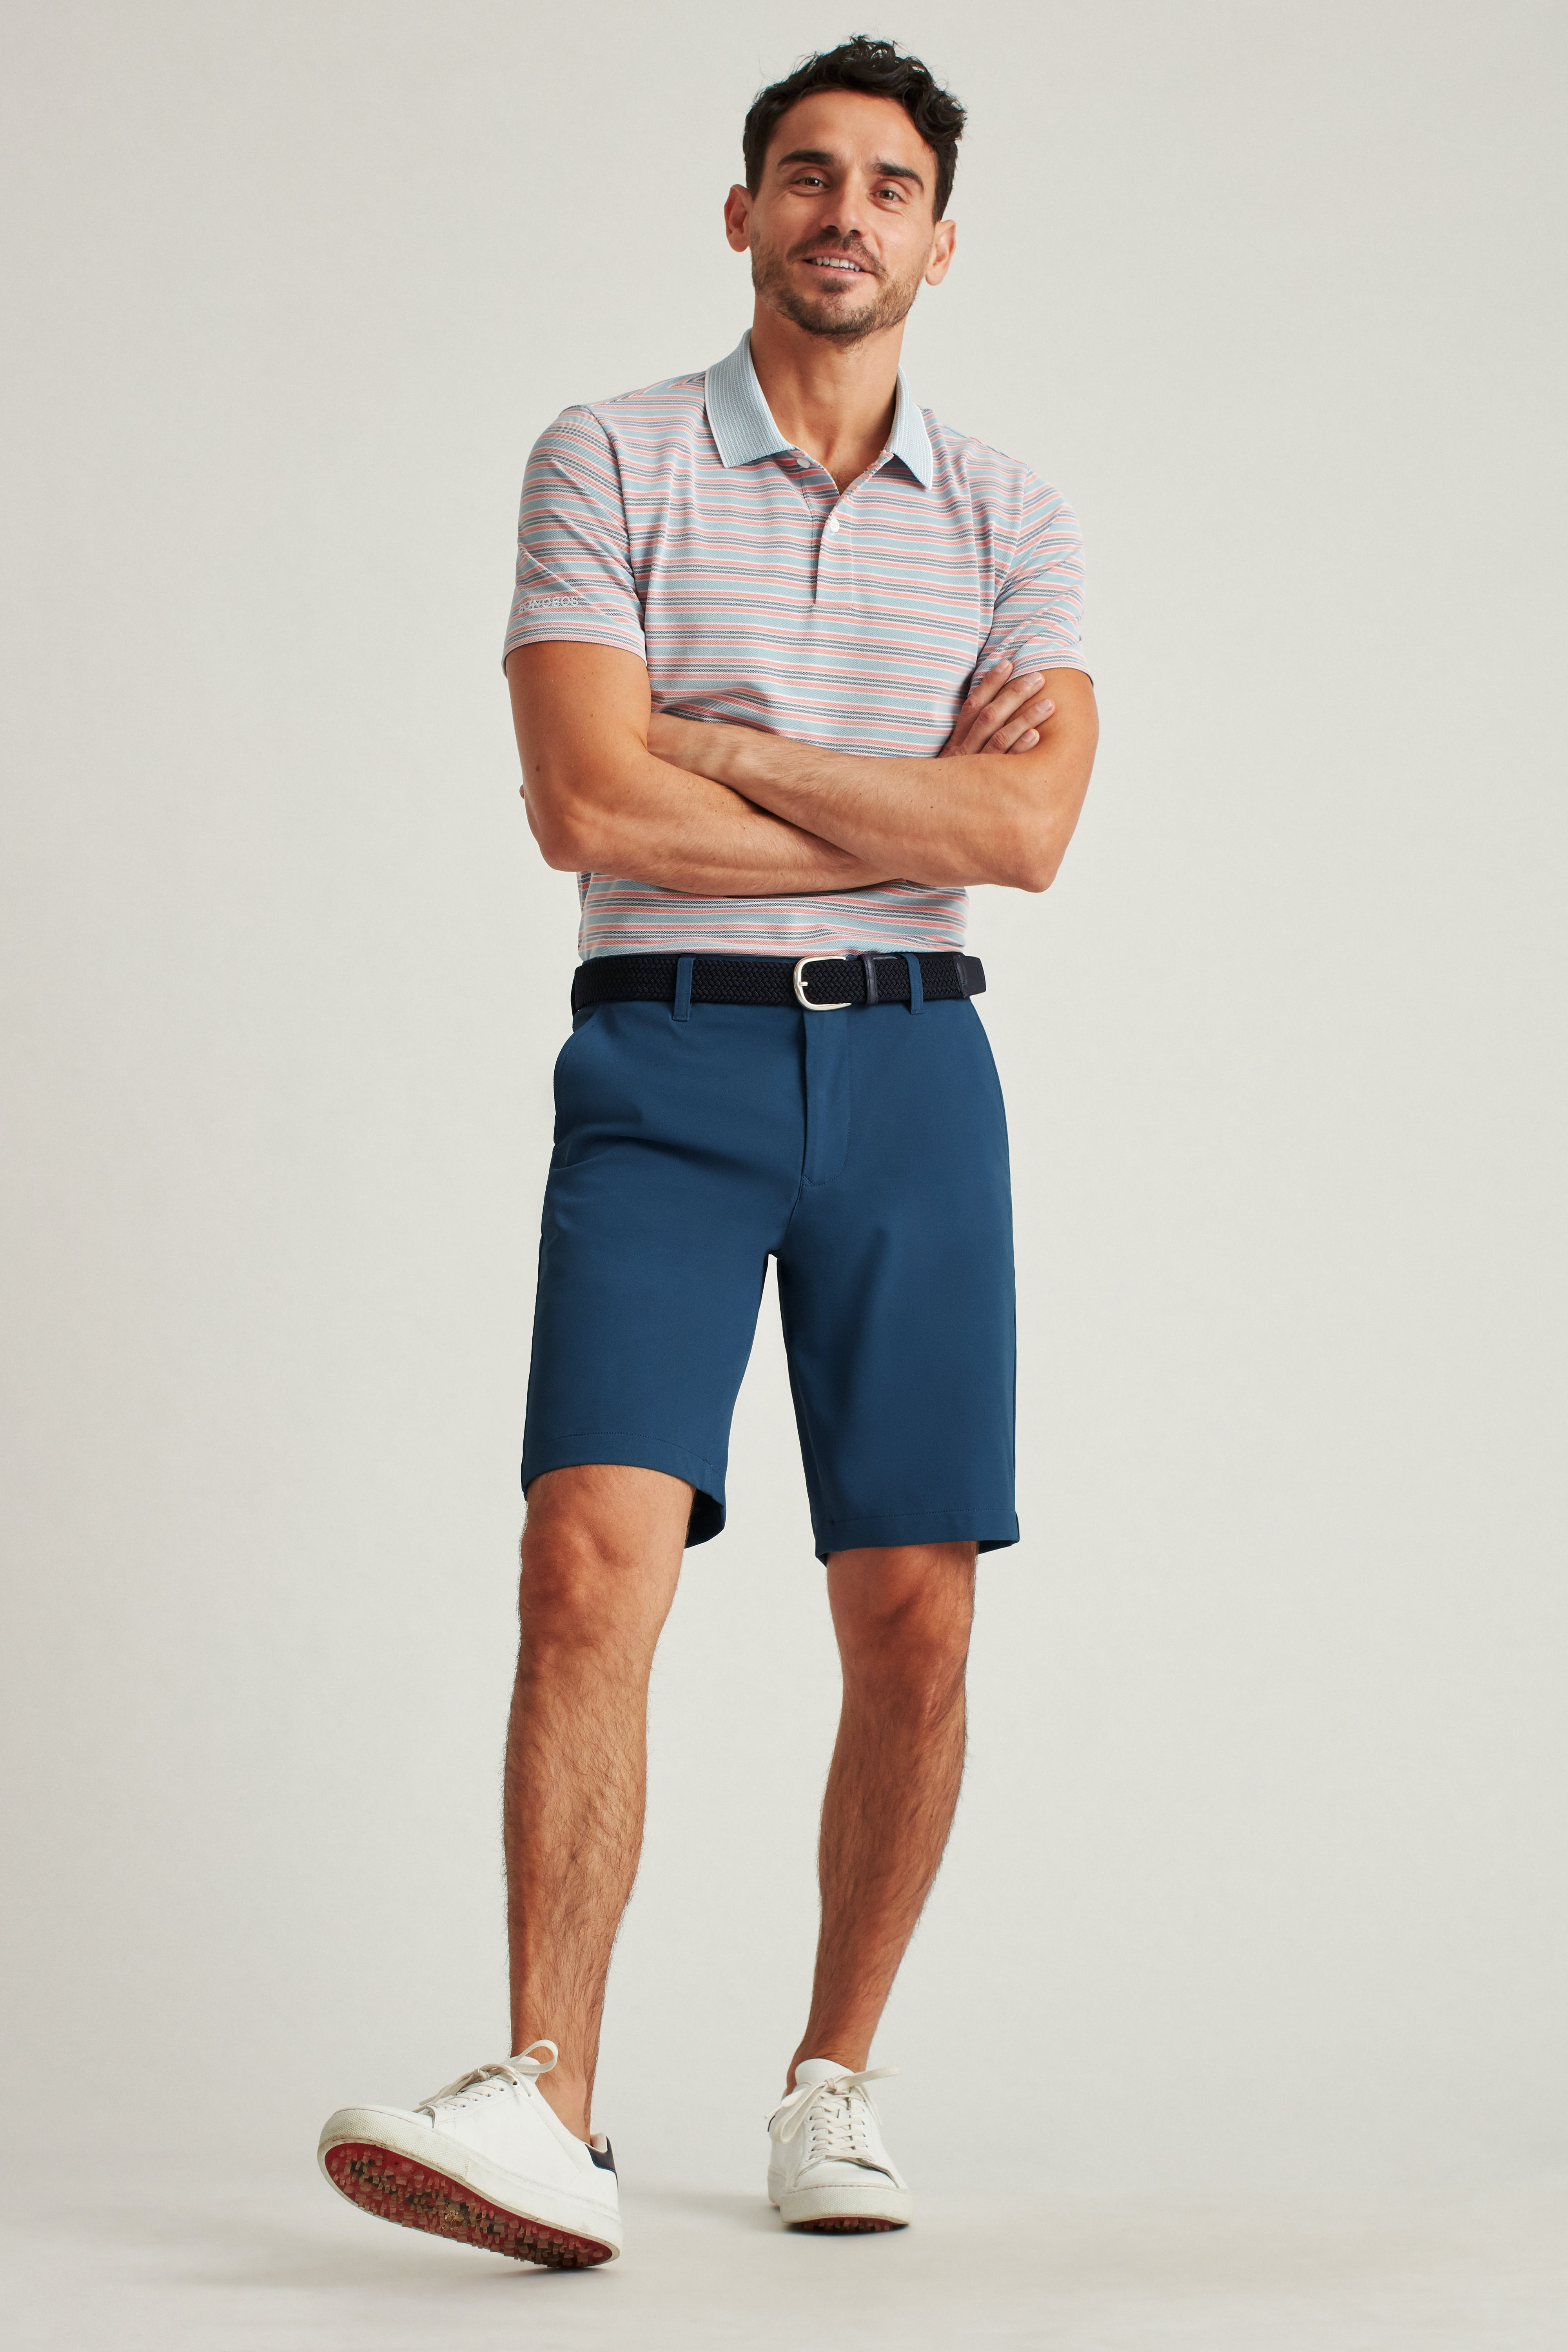 Justin Rose Highland Tour Shorts